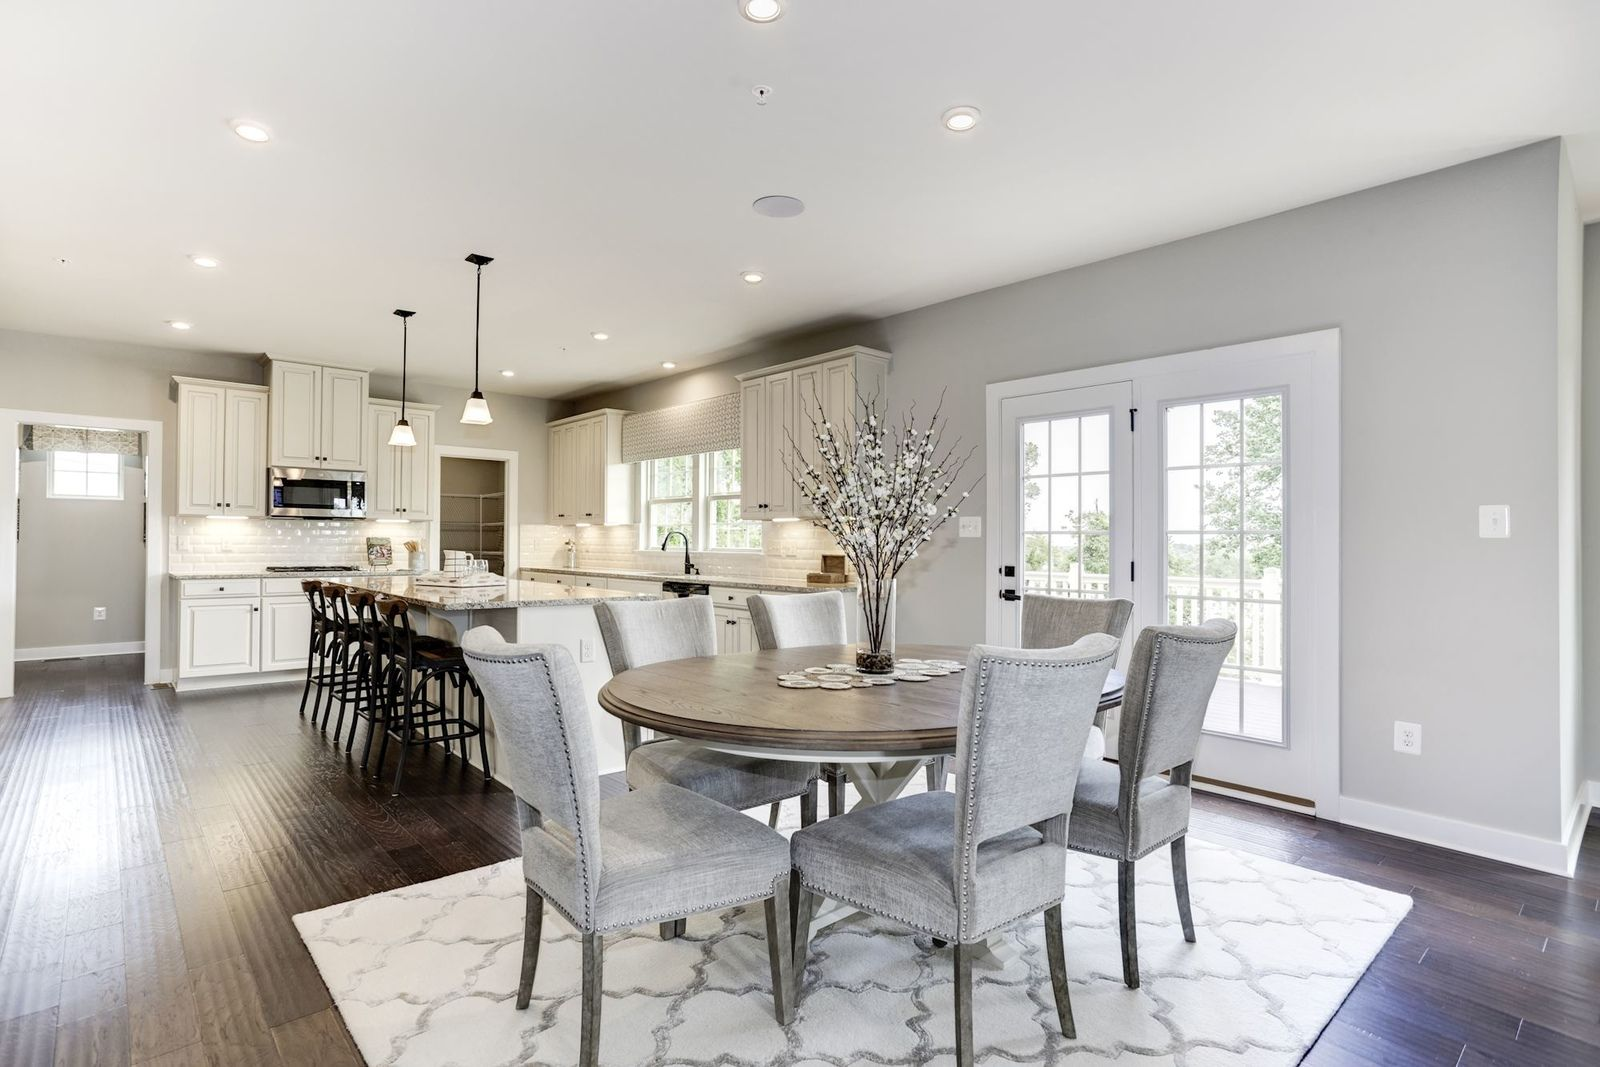 'Riverstone' by Ryan Homes-GVS in Greenville-Spartanburg